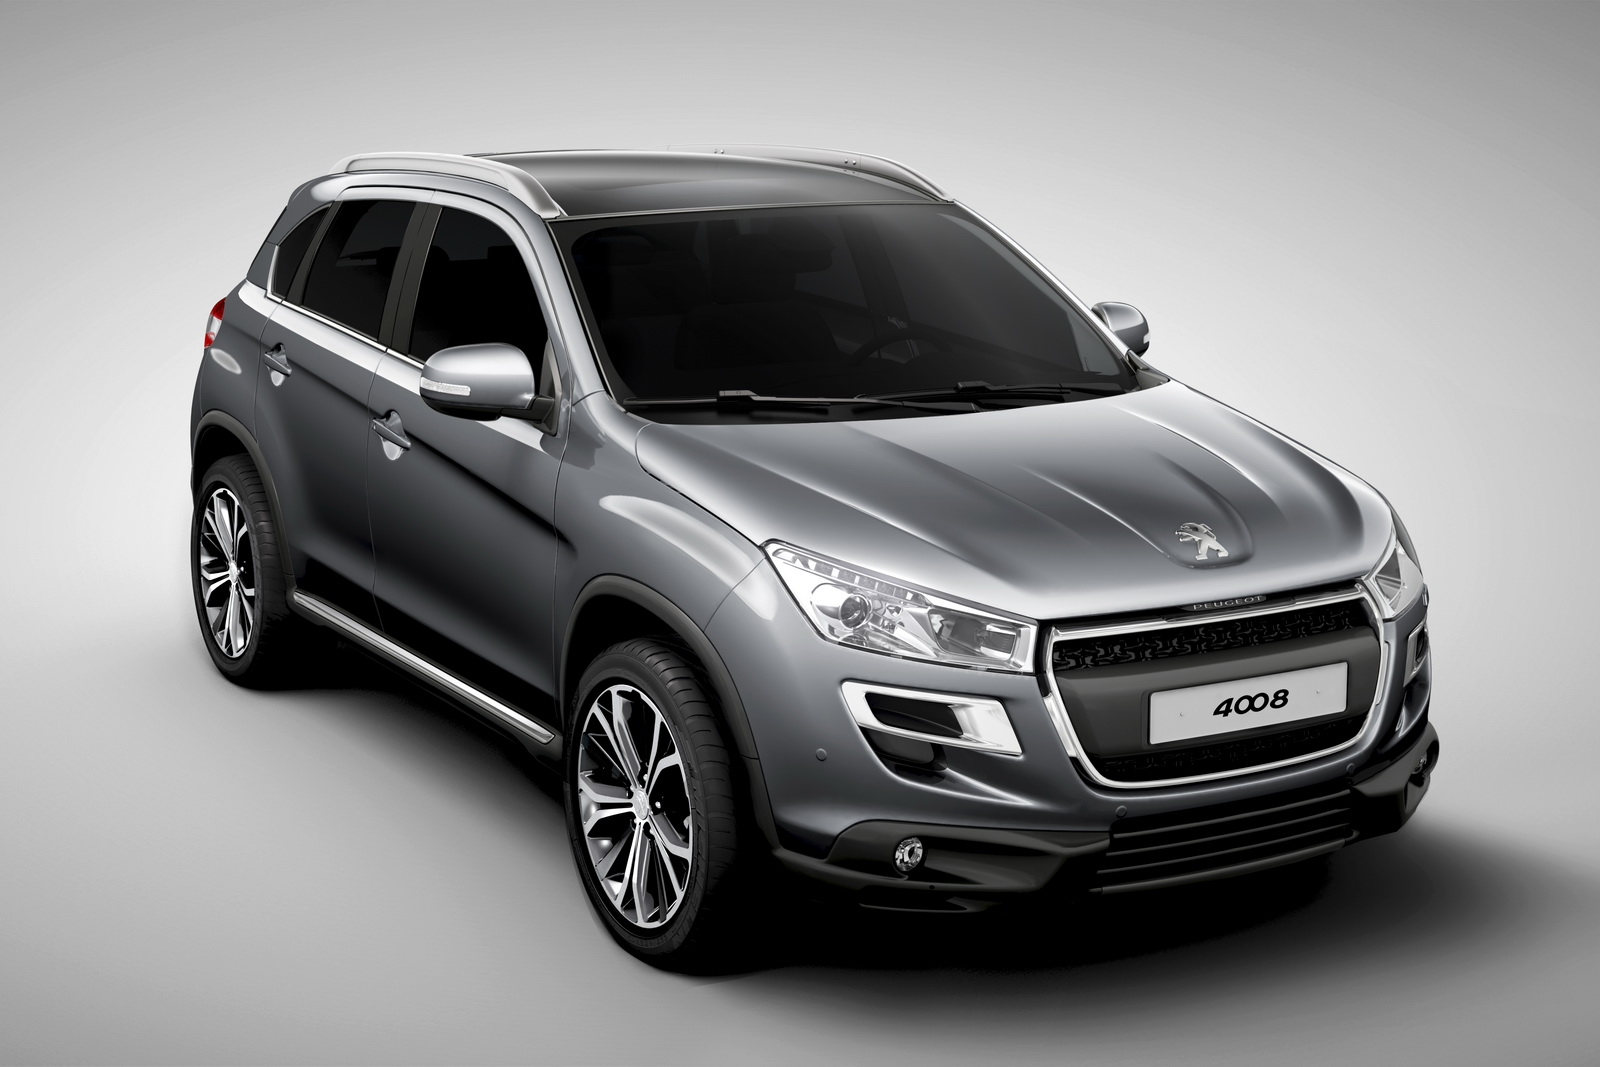 peugeot 5008 review indonesia with Peugeot 4008 Photo on Peugeot 4008 Photo additionally Mitsubishi Outlander Sport Reviews additionally Forza Horizon 3 Hoonicorn Mustang V2 Drift Hoonigan Dlc Youtube additionally Varian X Untuk Innova Pula Rm132800 in addition Nissan Juke Likely For Australia.